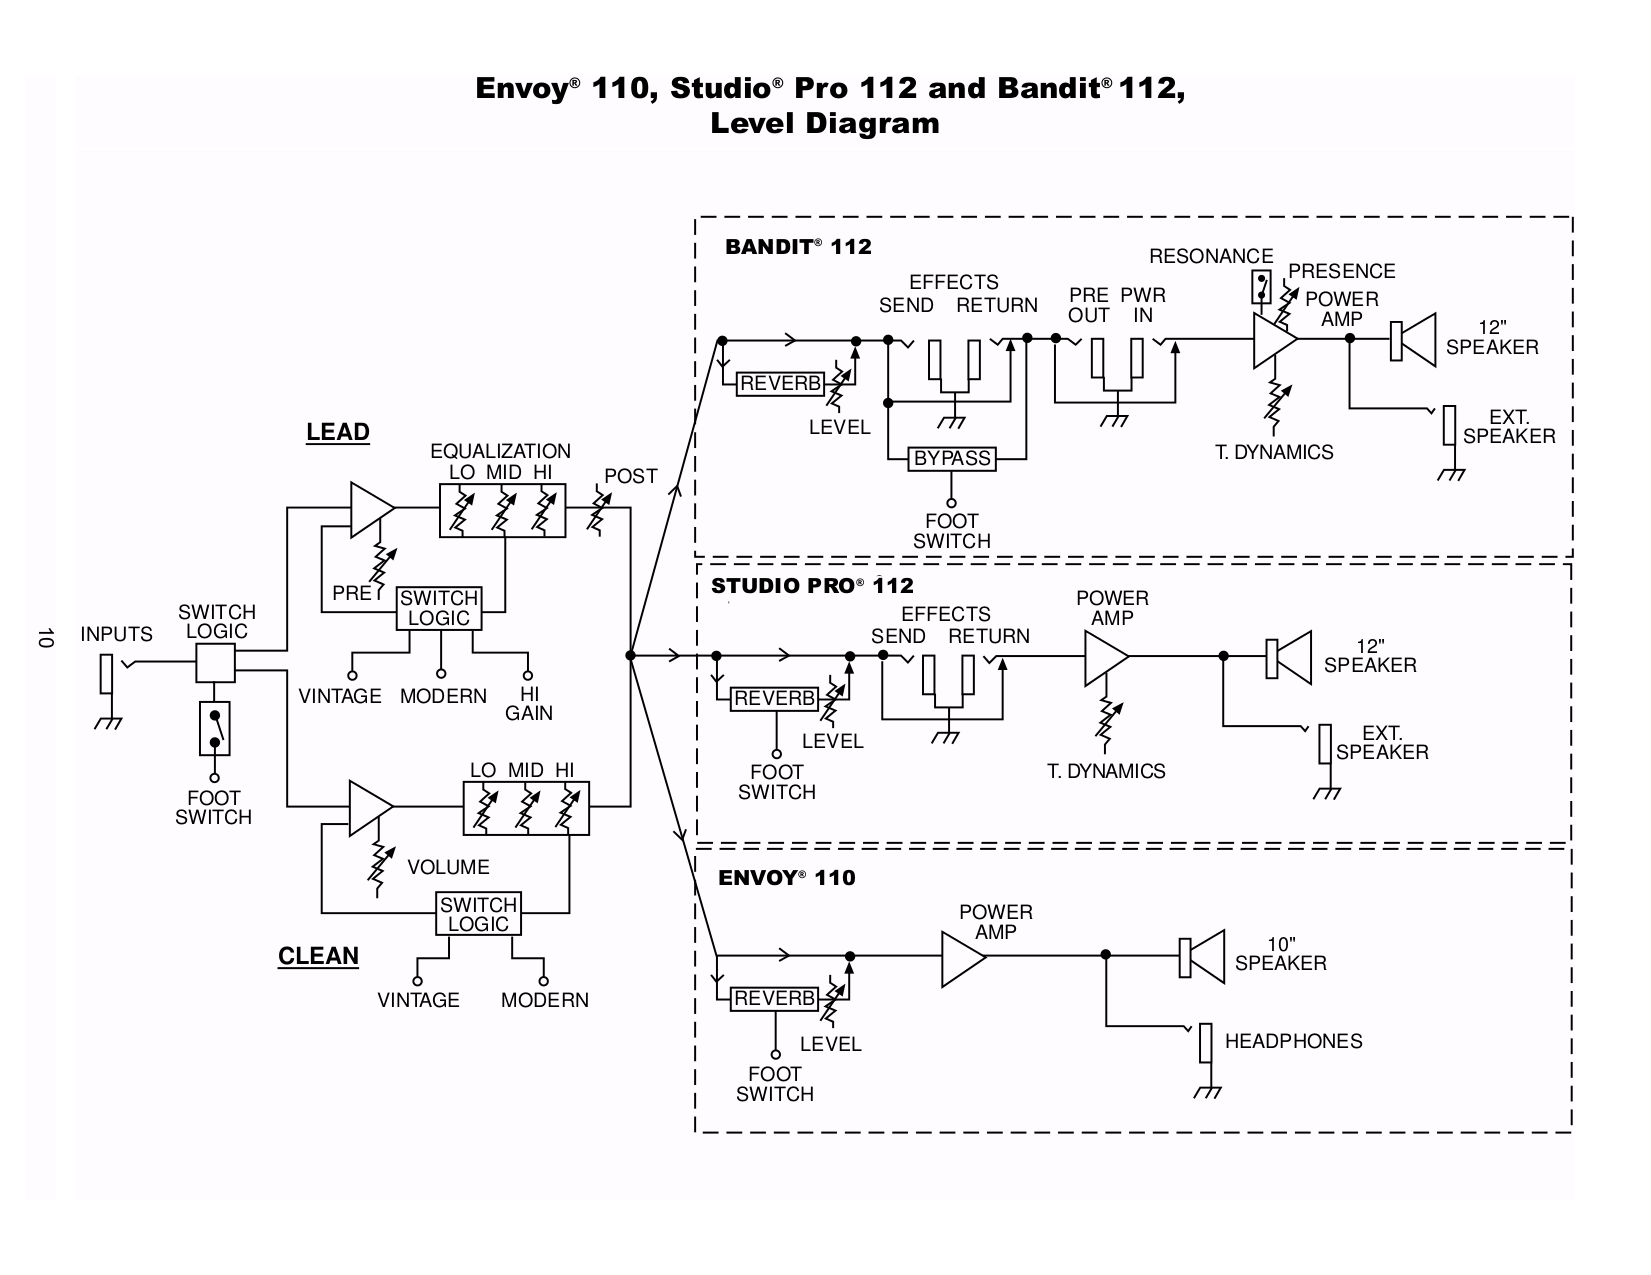 peavey b wiring diagram with Cgvhdmv5lwjhbmrpdc0xmtitc2nozw1hdglj on Guitar Wiring Schematics For Washburn together with Showthread also Footswitch furthermore CGVhdmV5LWJhbmRpdC0xMTItc2NoZW1hdGlj also Speaker For Fender Wiring Diagrams.